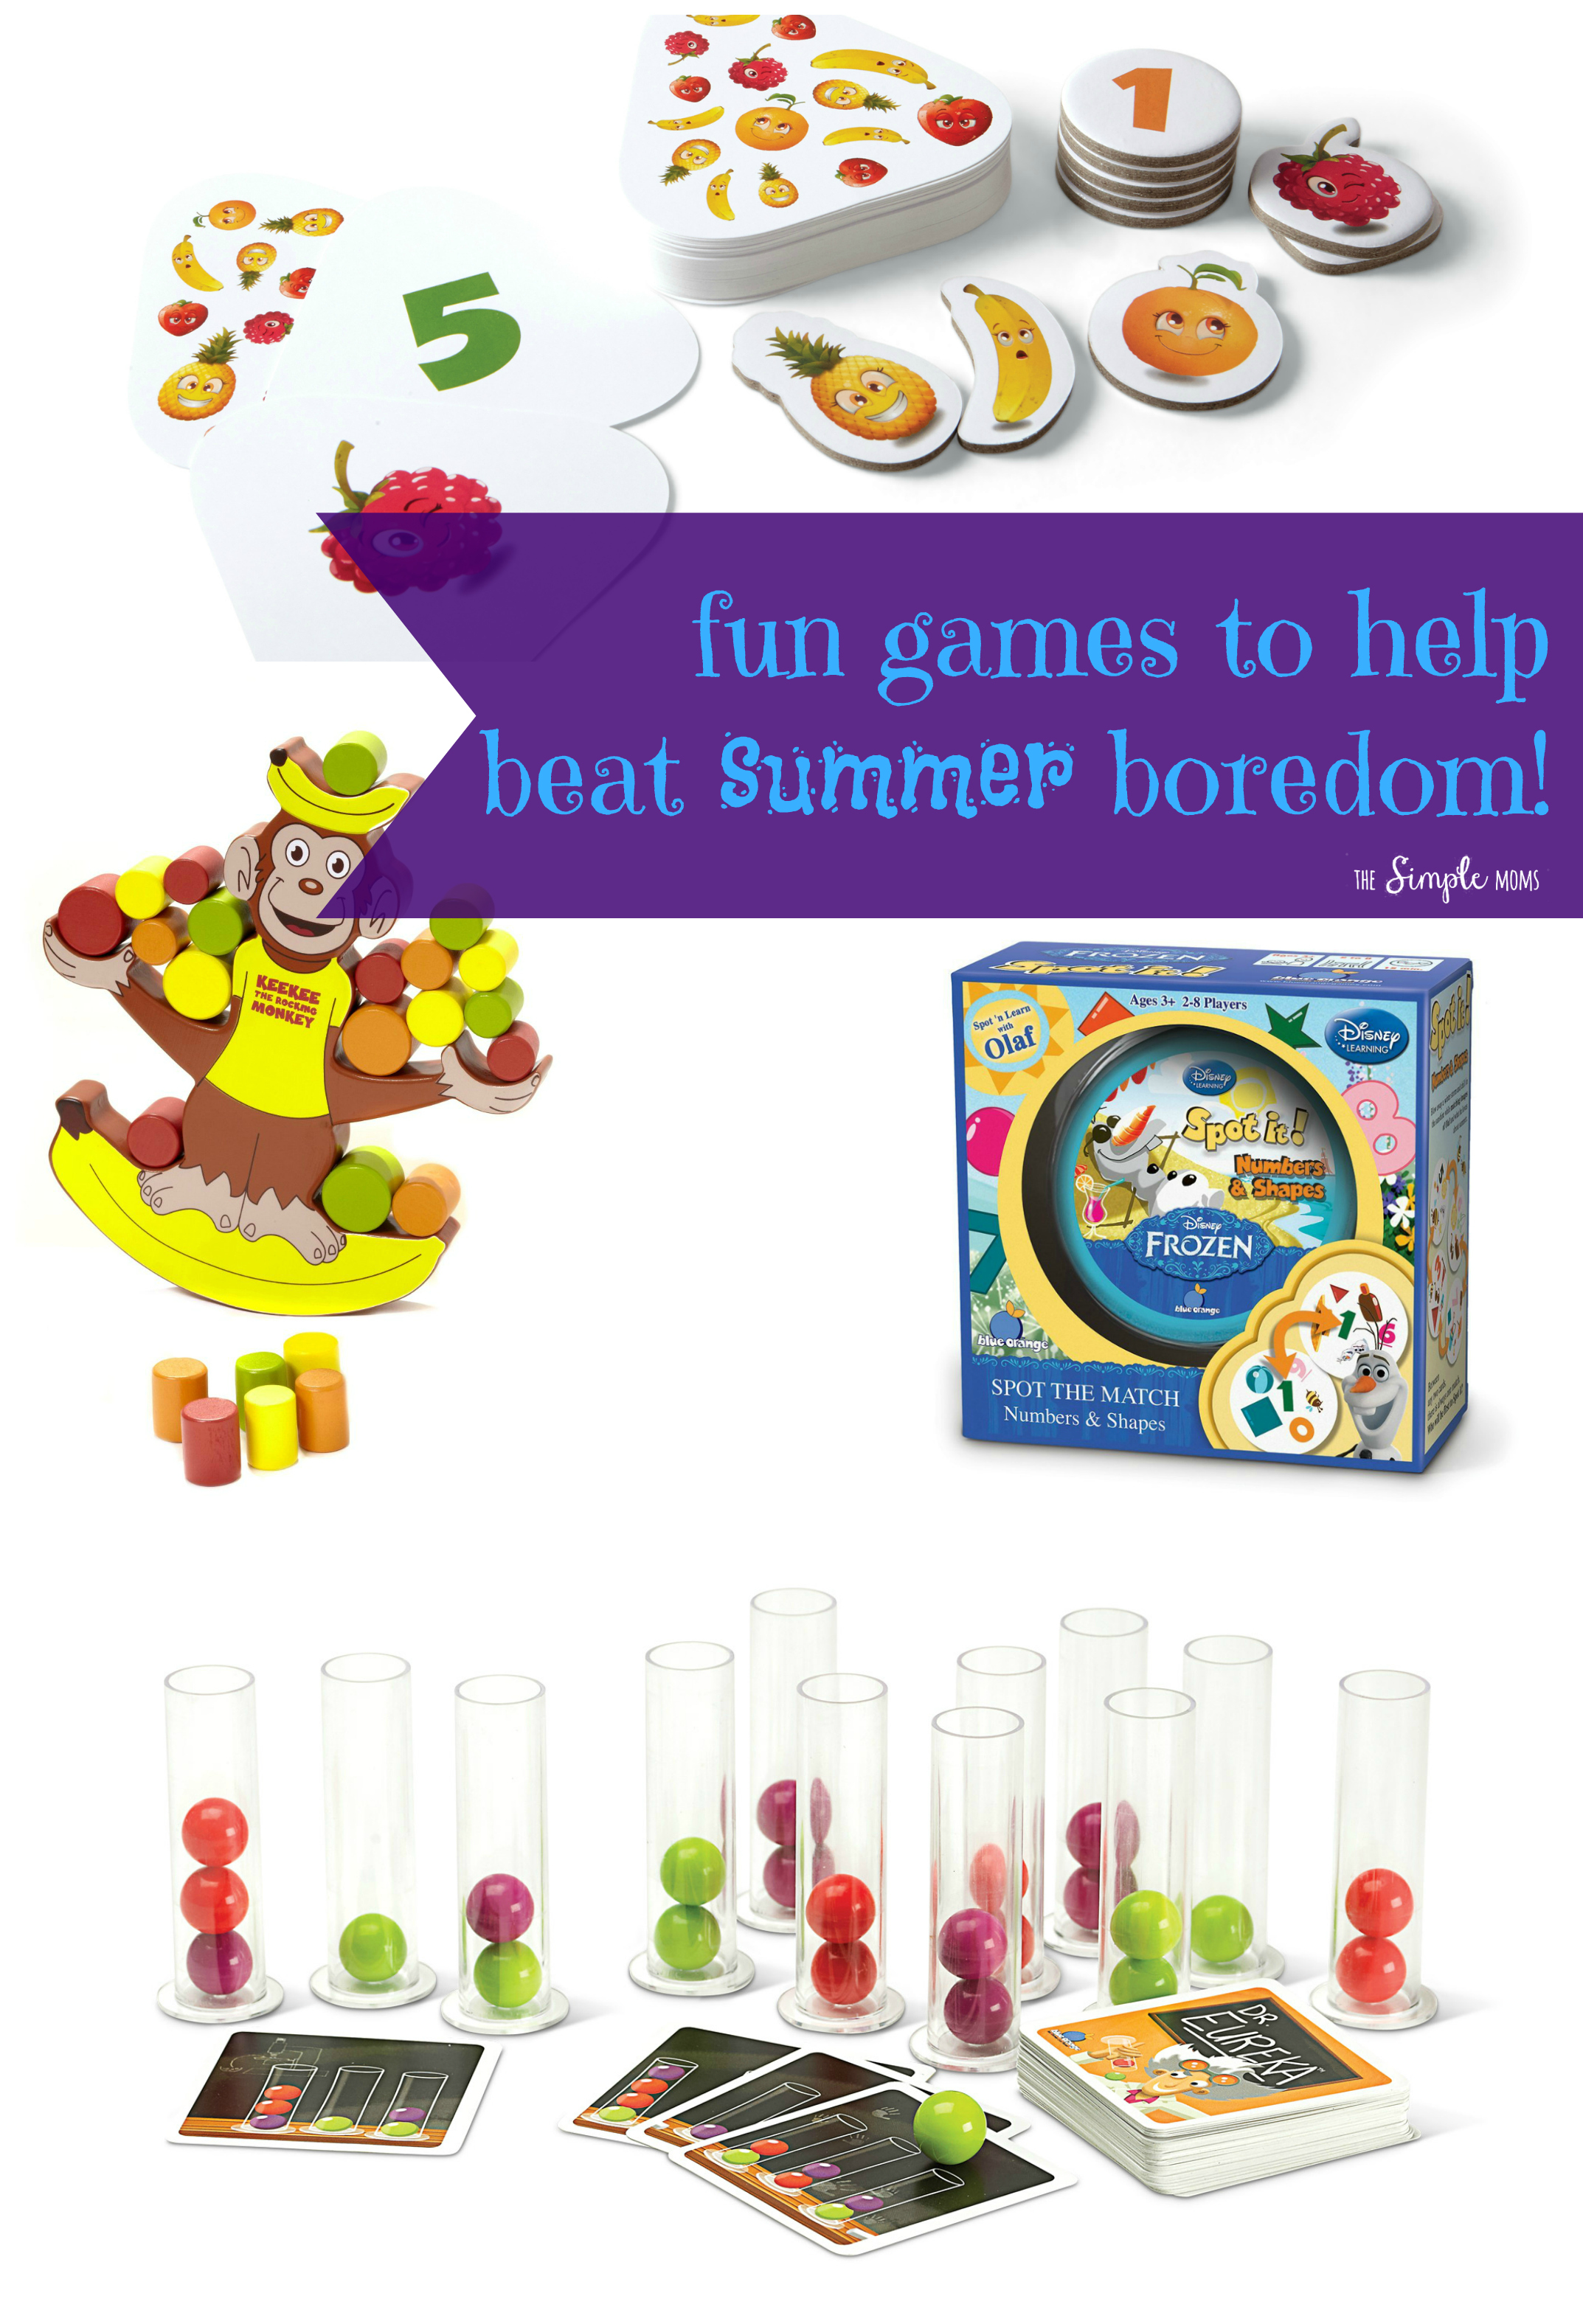 Fun Games to Beat Summer Boredom